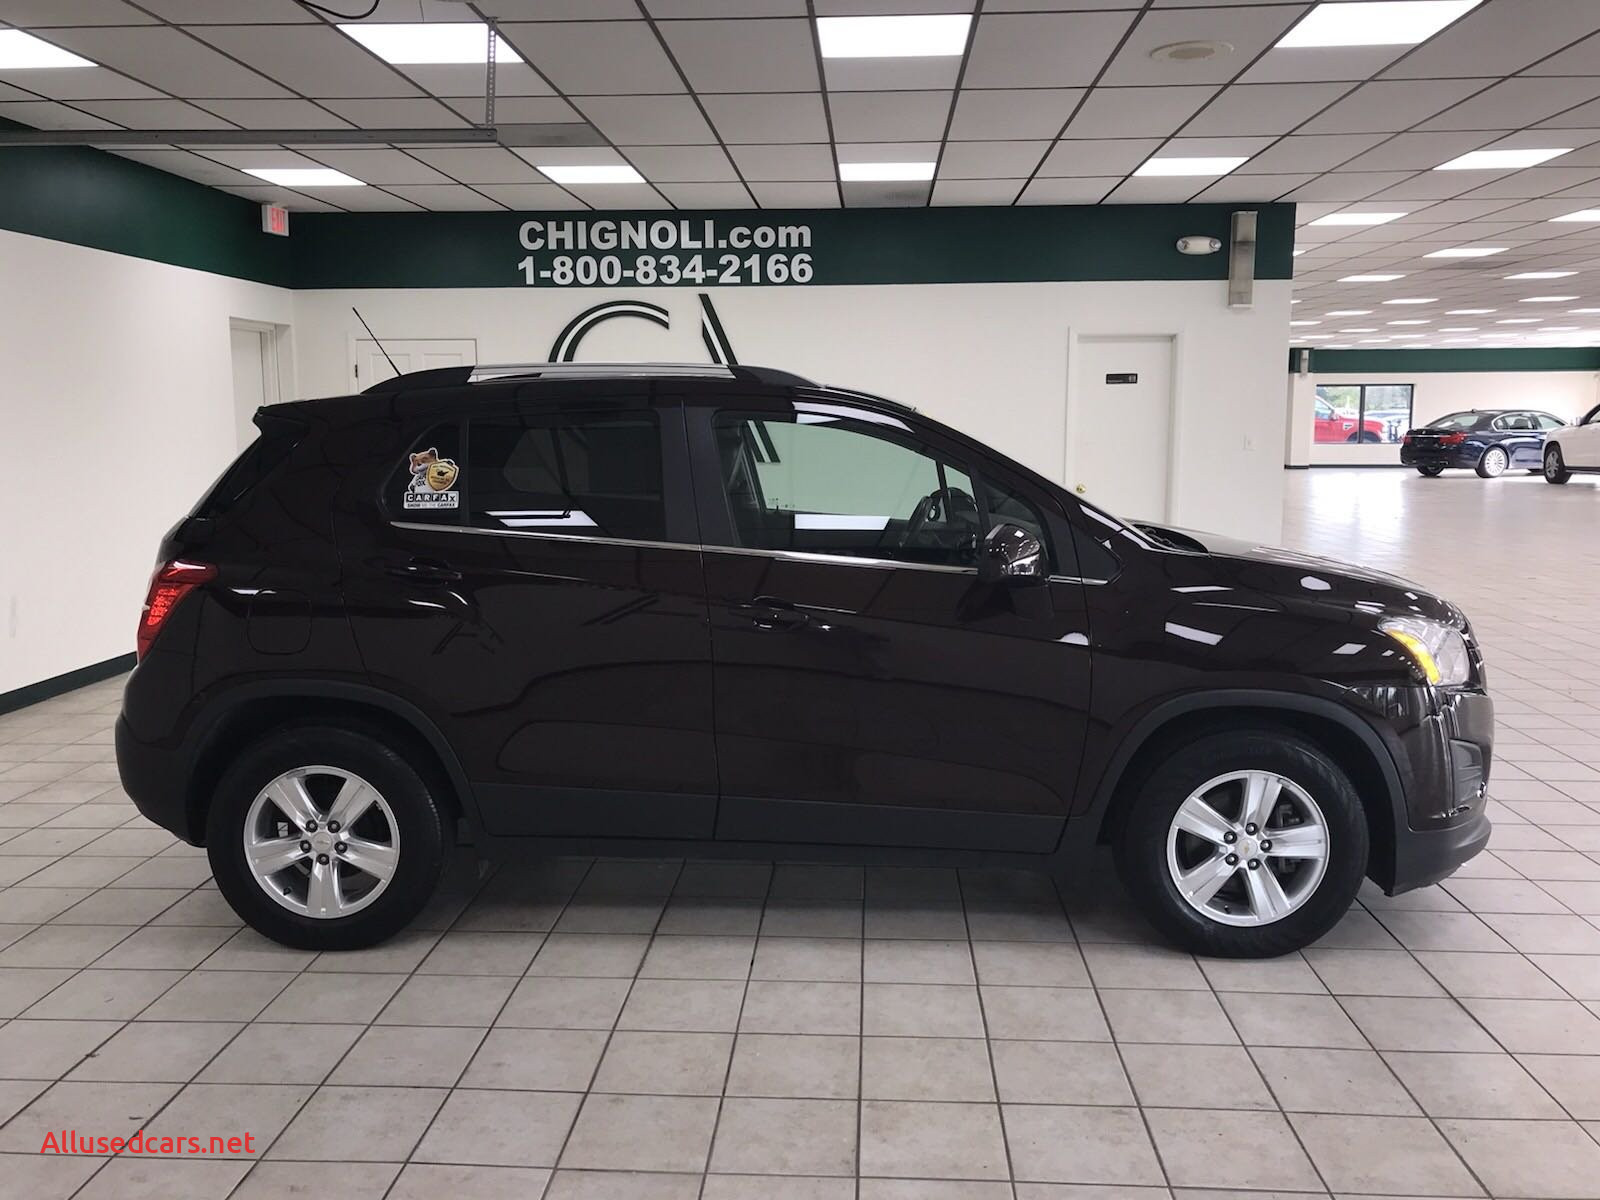 Used Mpv Cars for Sale Near Me Beautiful Used Vehicles Between $10 001 and $15 000 for Sale In Joliet